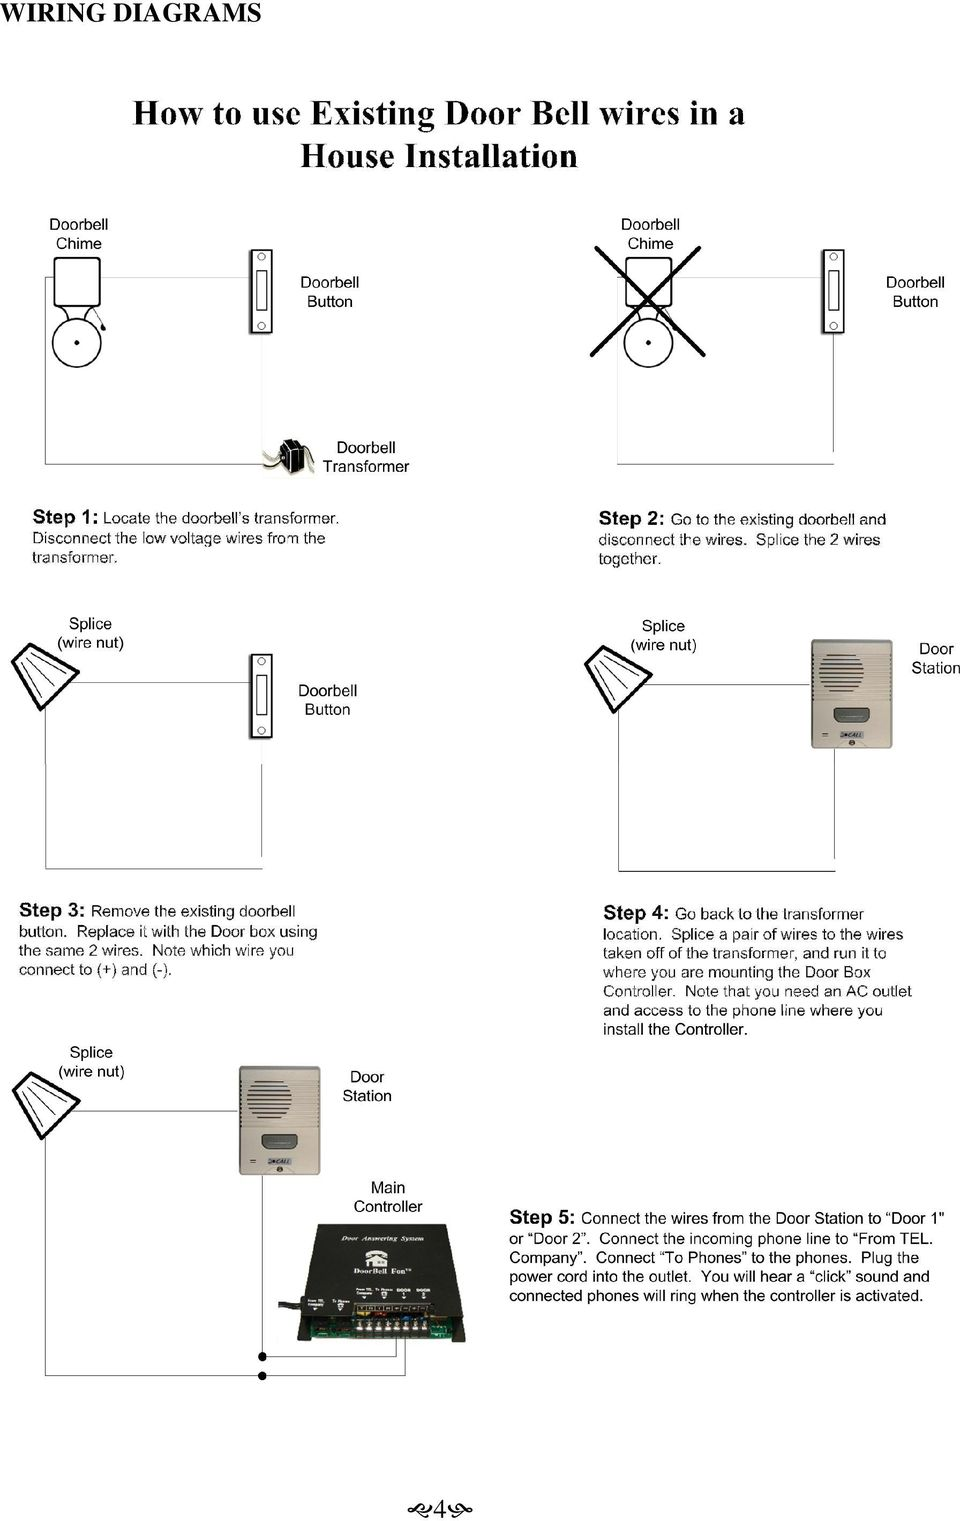 Doorbell Fon User And Installation Manual Pdf Installing A Wiring Schematic 4 Diagrams